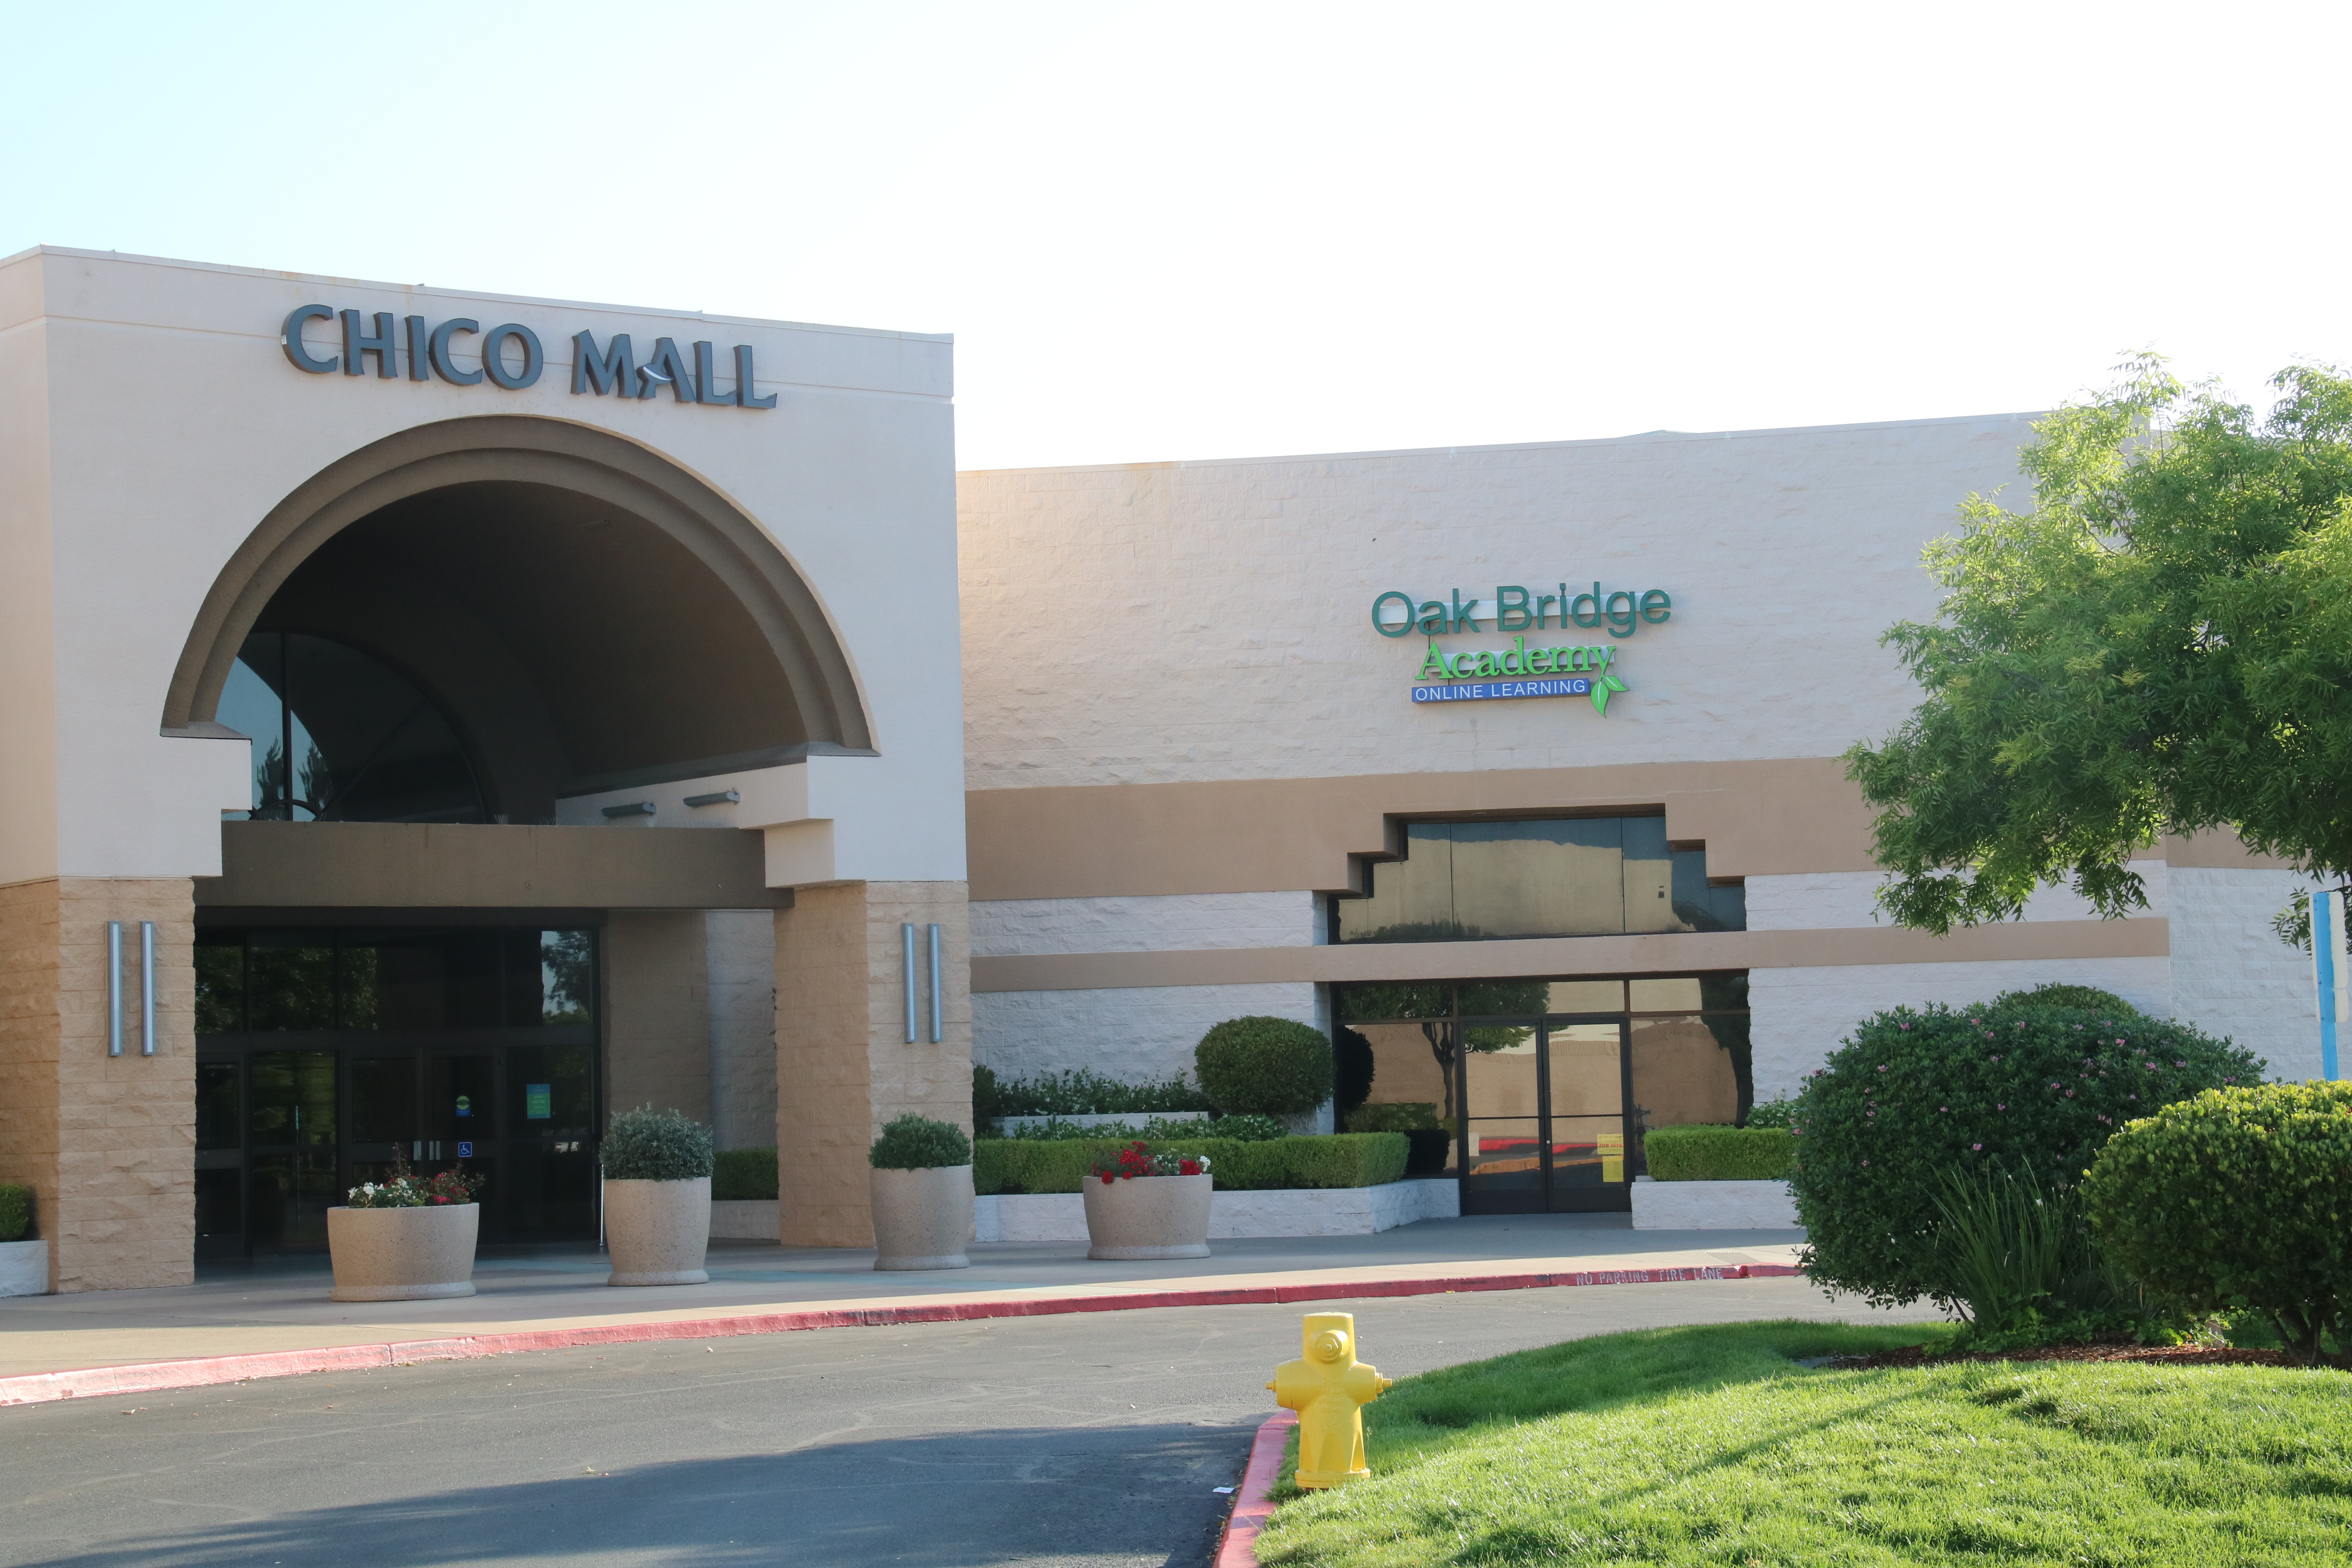 Photo of the Chico Mall and the Oak Bridge Academy Entrance